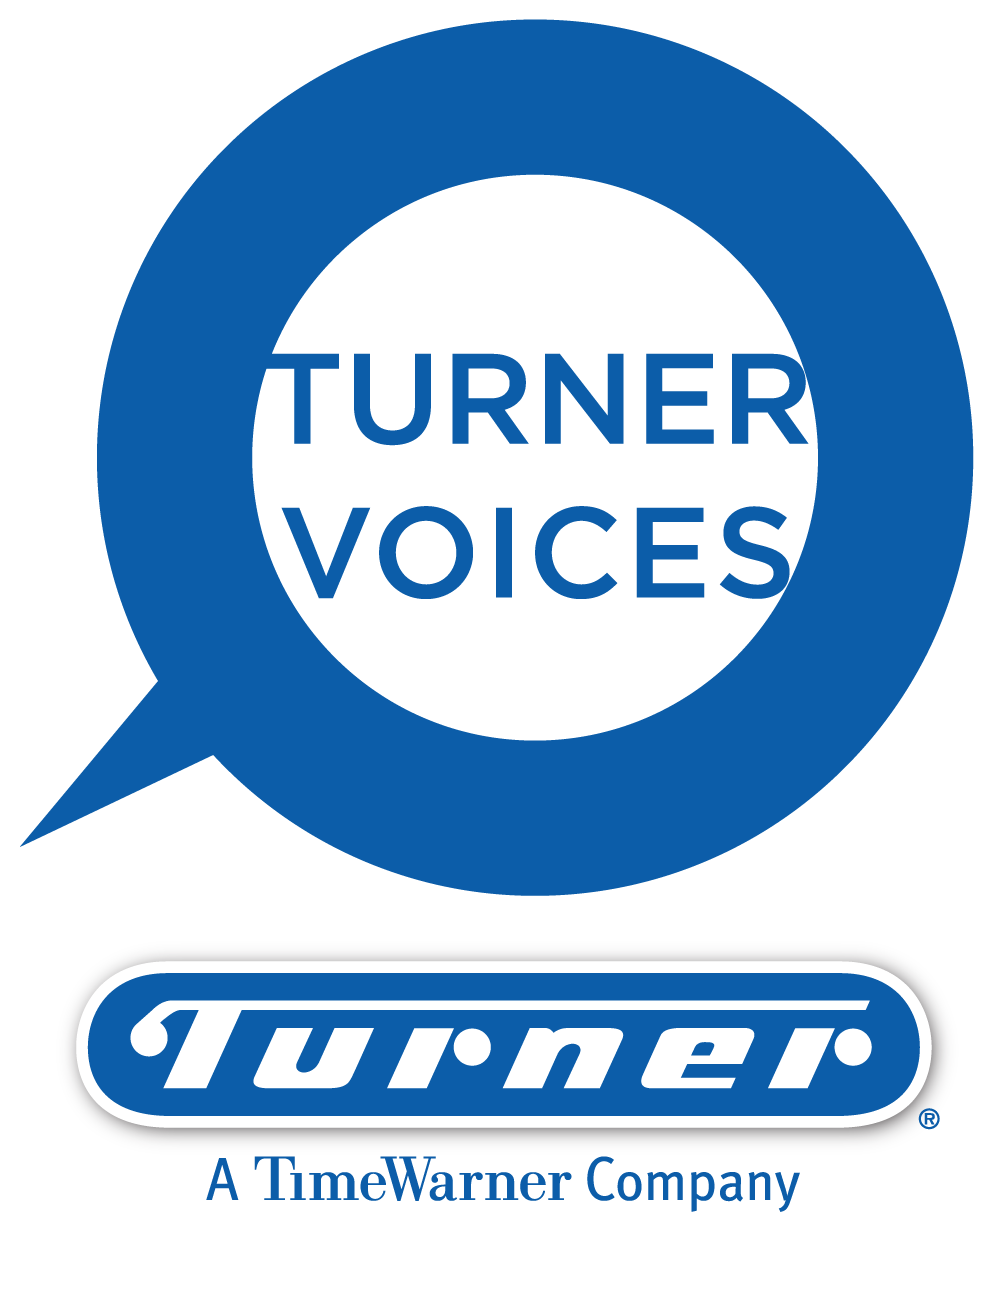 TurnerLogo.png